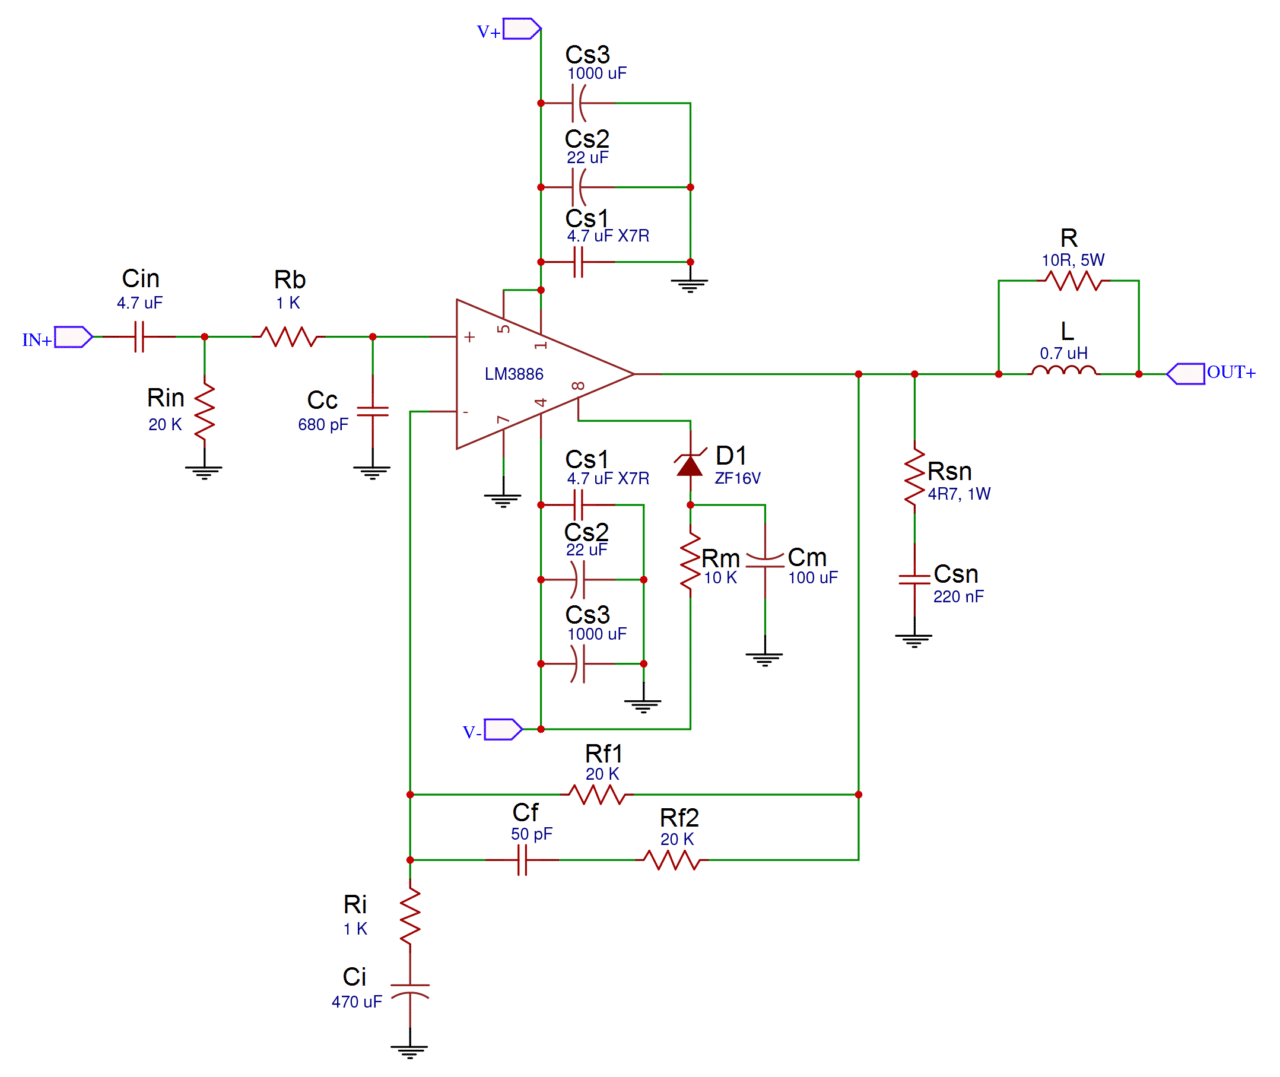 A Complete Guide To Design And Build Hi Fi Lm3886 Amplifier Loop Wiring Diagram Find Values For The Components In Circuit Ill Be Using Schematic Below Its Basically Same As One Datasheet